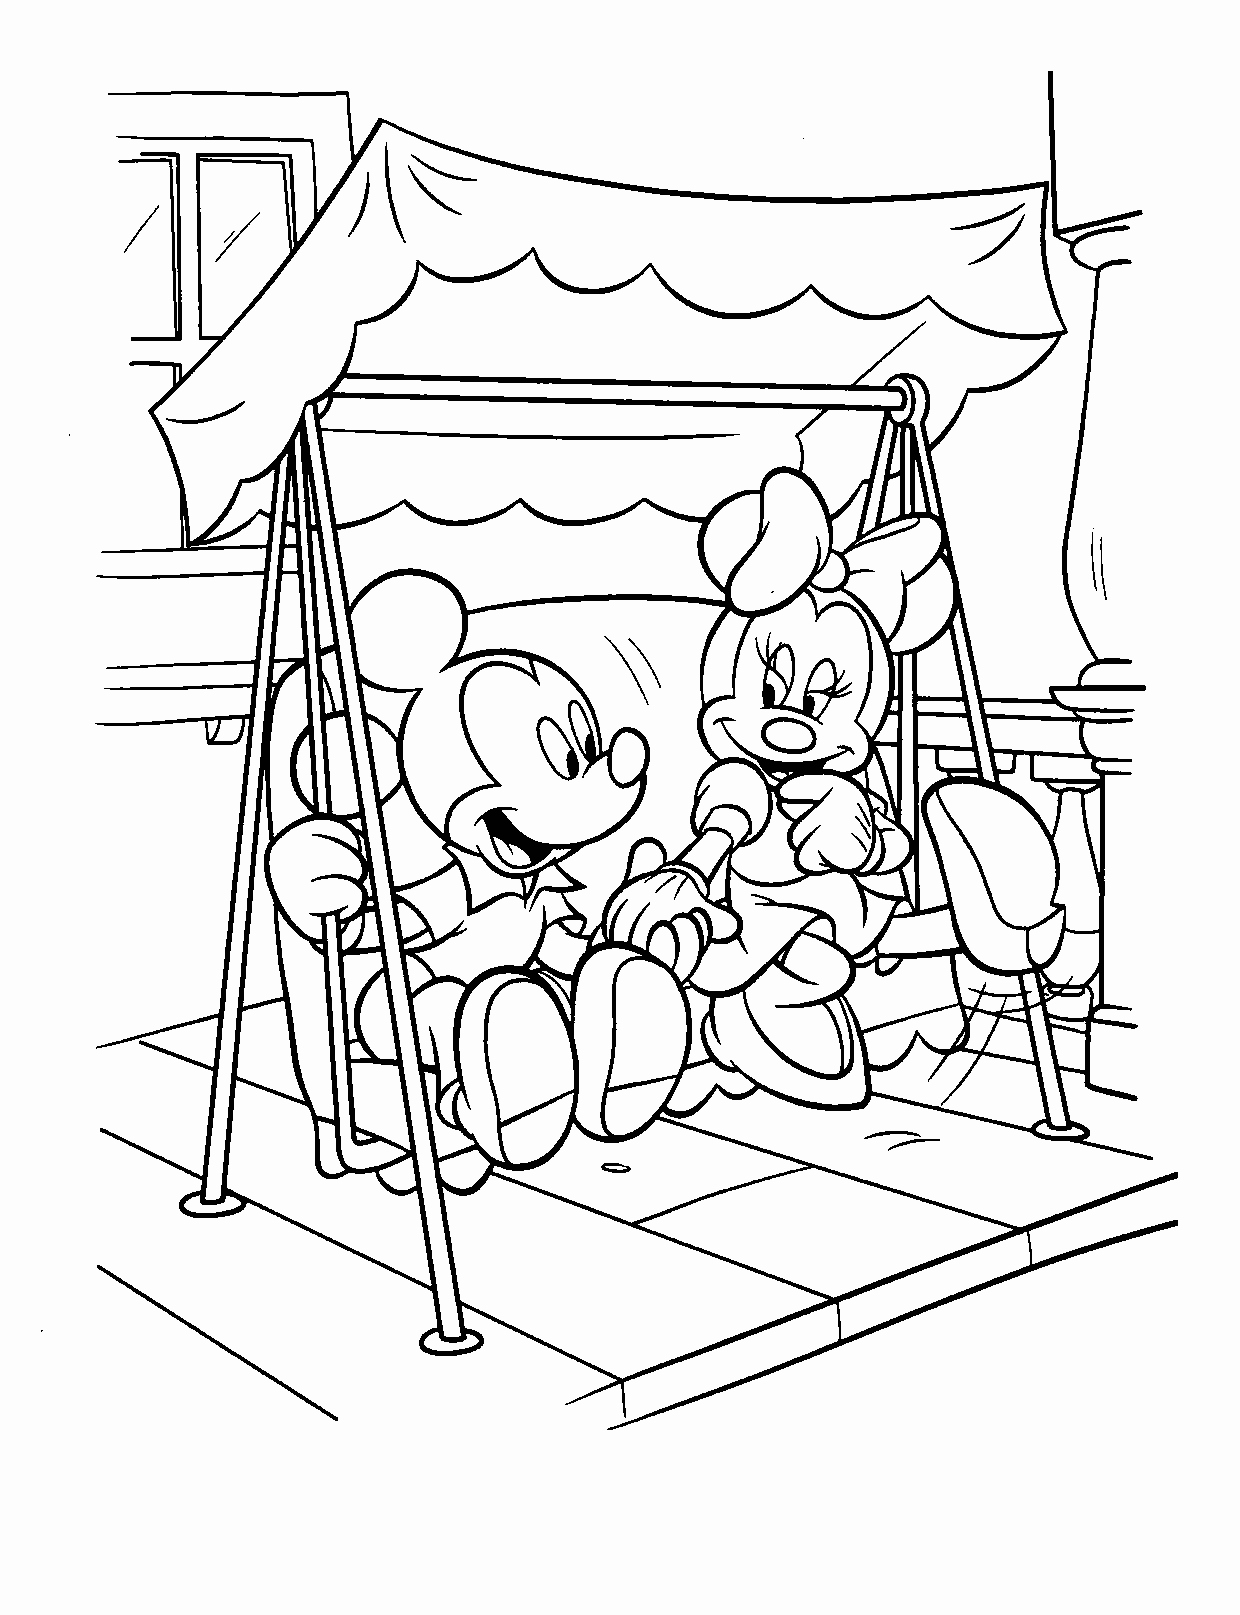 1240x1615 Mickey Mouse Halloween Coloring Pages Elegant Printable Minnie